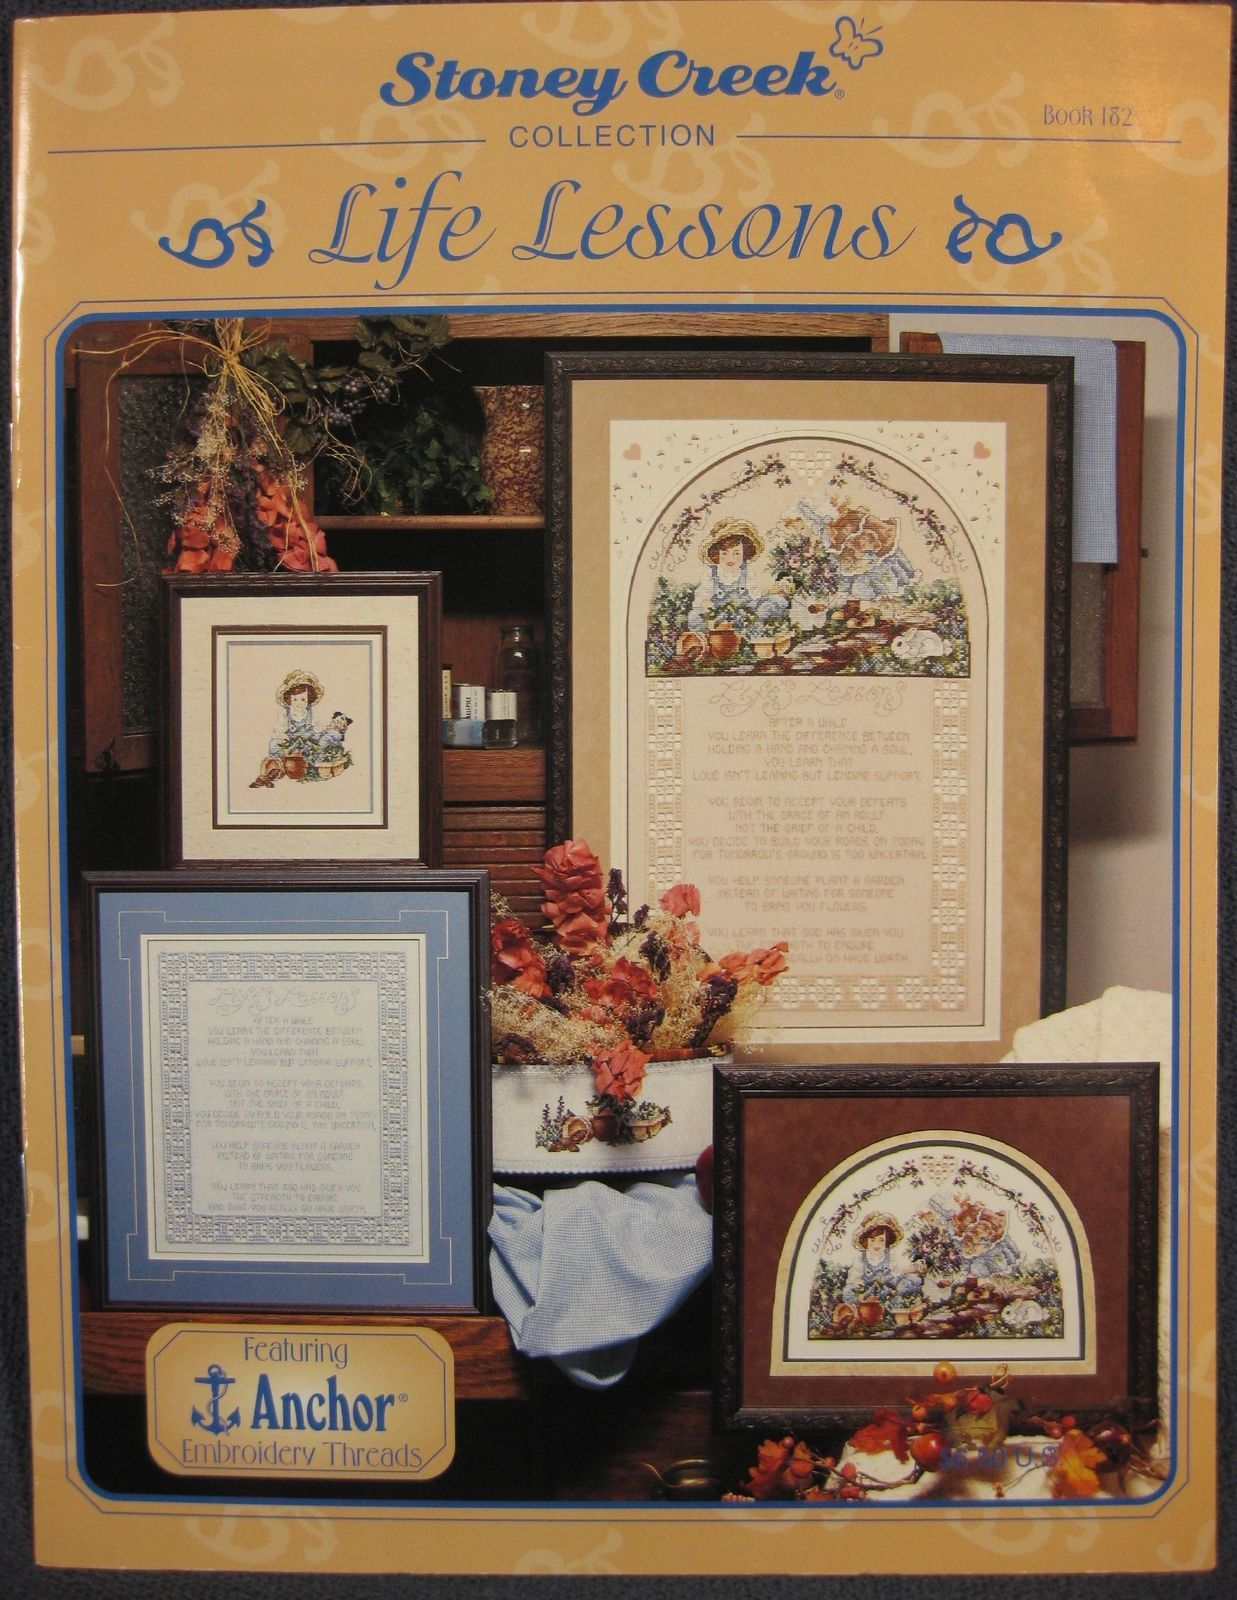 Stoney Creek Book 182 LIFE LESSONS Counted Cross Stitch Pattern Collection 1997 - $6.50